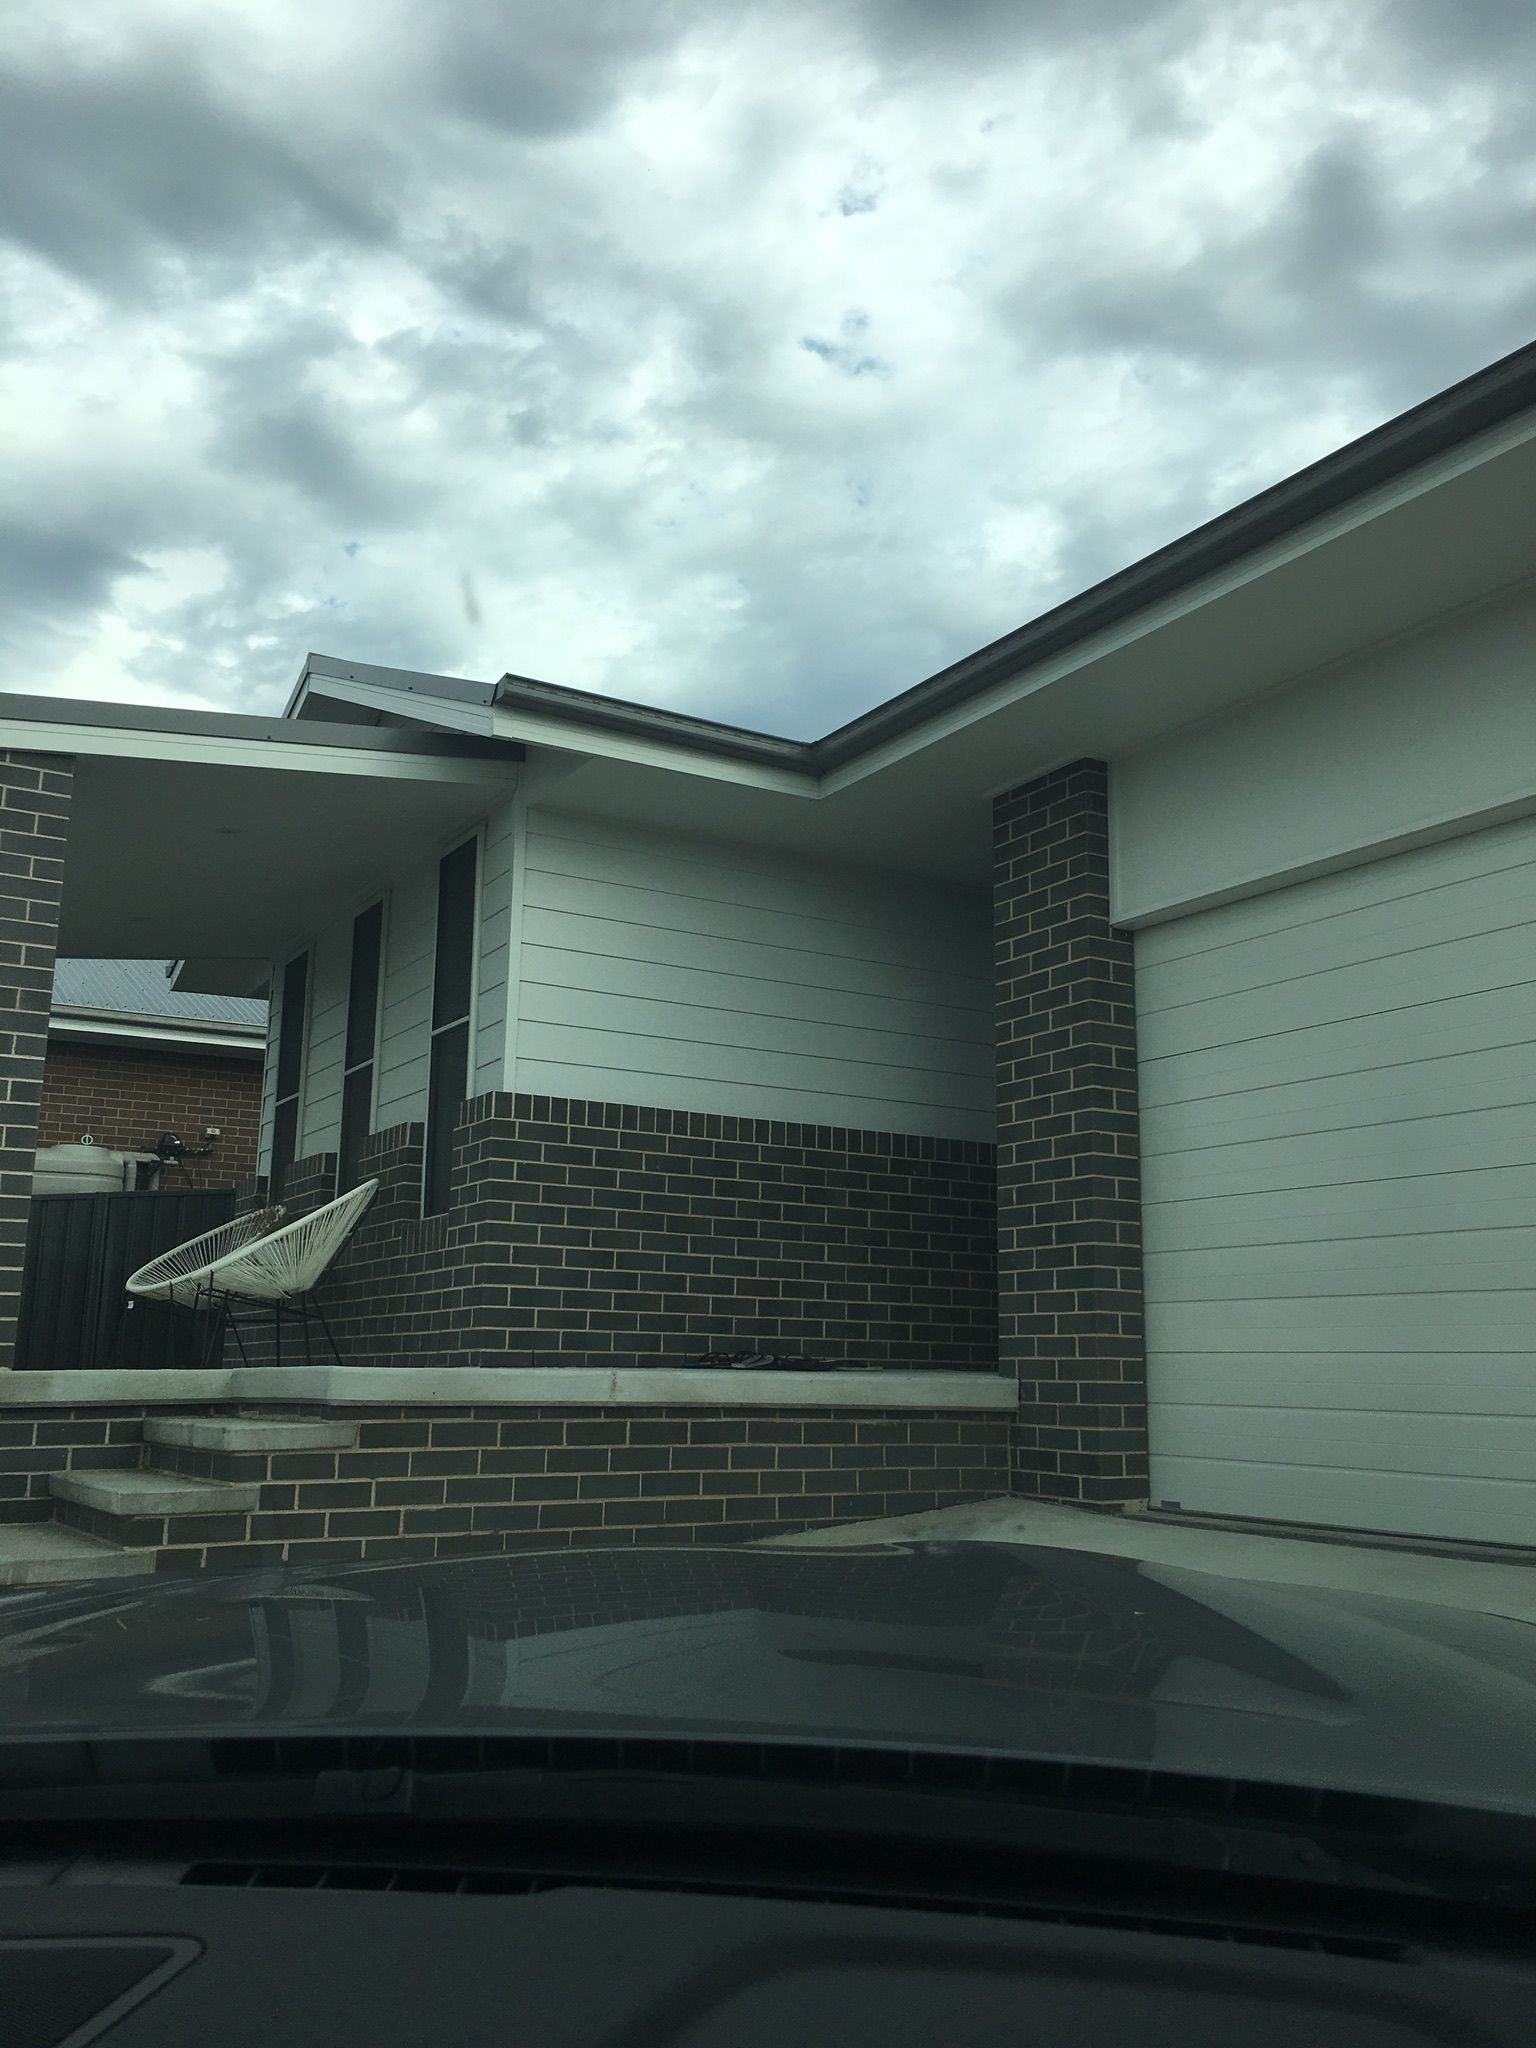 Colorbond roofing colours pictures to pin on pinterest - Striking Elevation With Feature Gable Planking Rendered Facade And Colorbond Roof